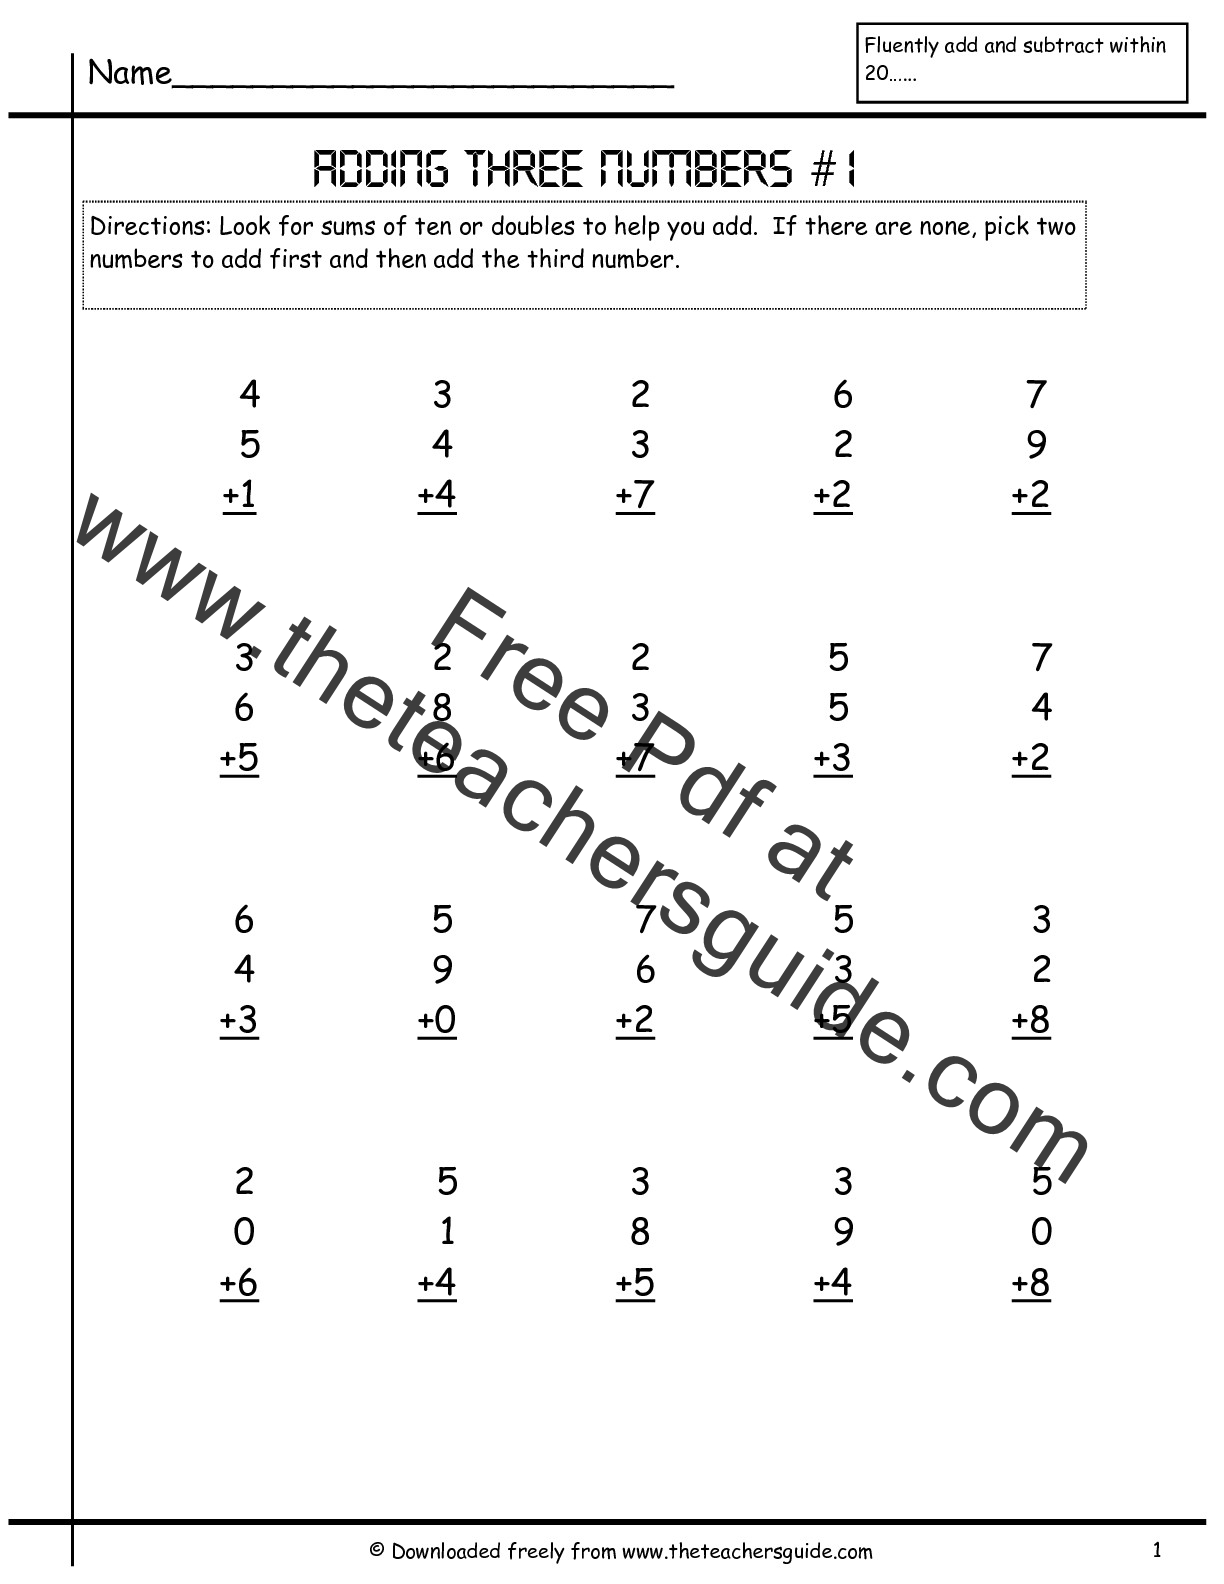 Adding Three Single Digit Numbers Worksheets From The